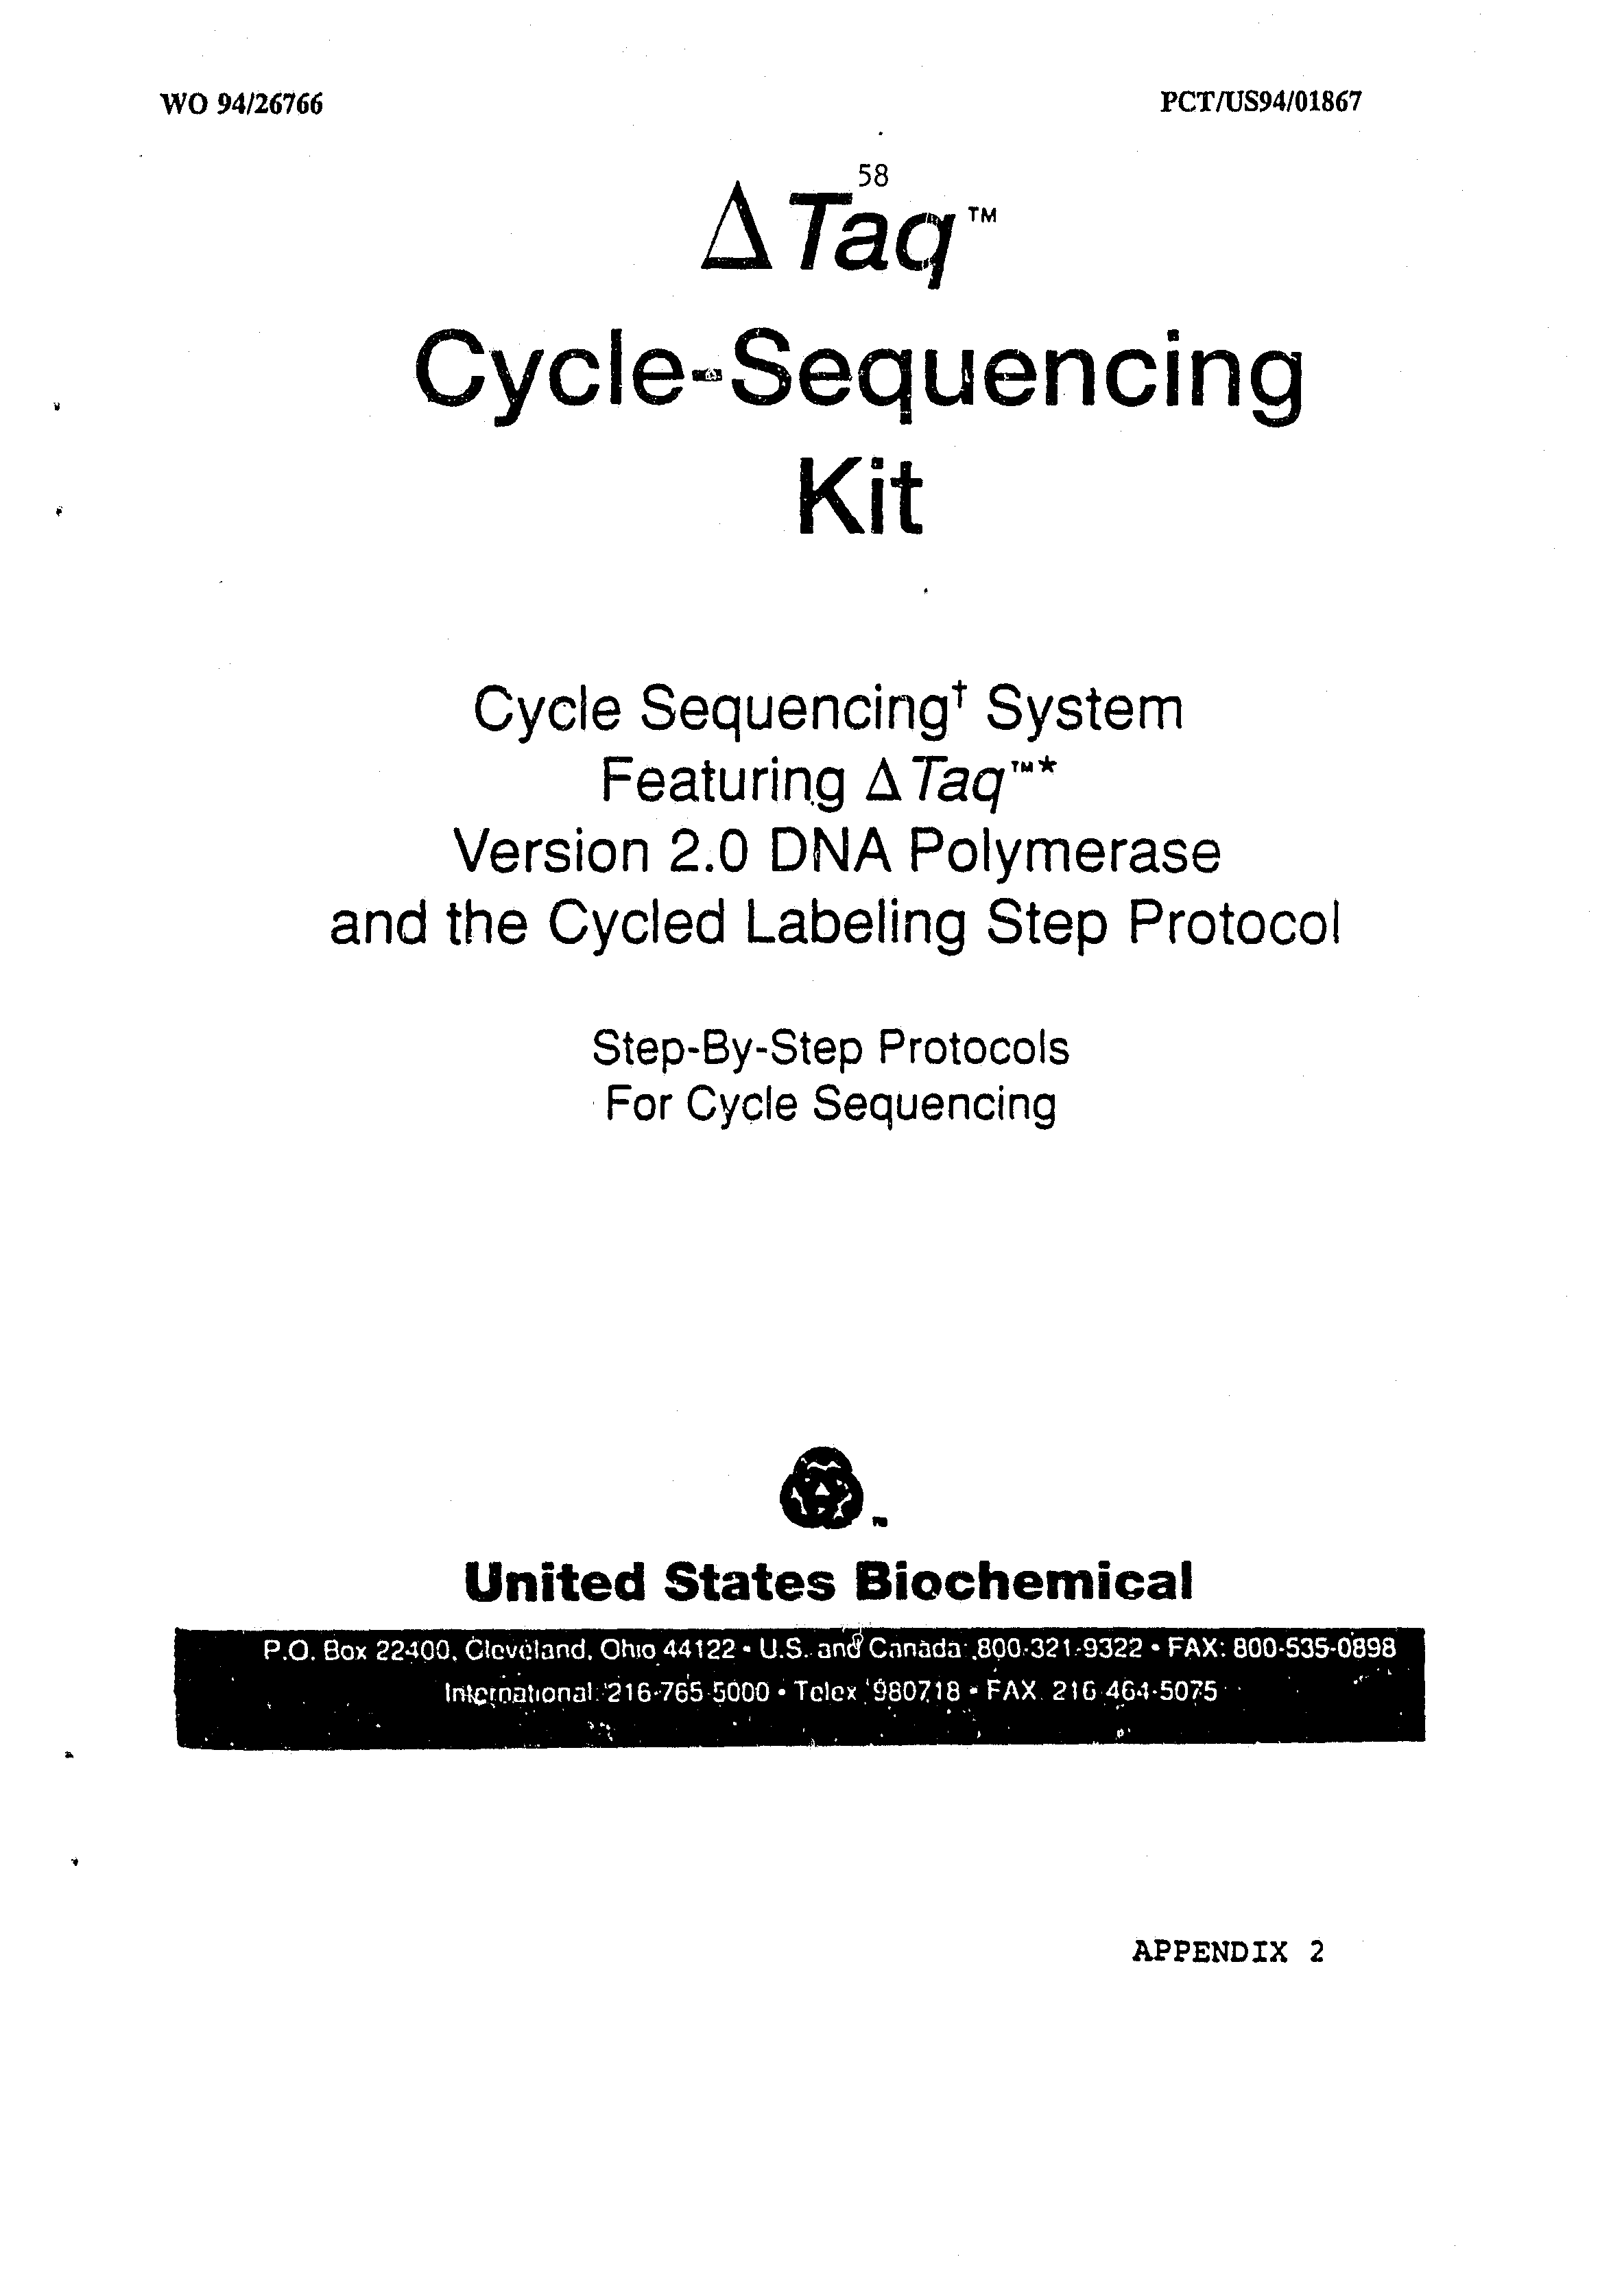 AU 1994/062464 A - Dna Polymerases With Enhanced